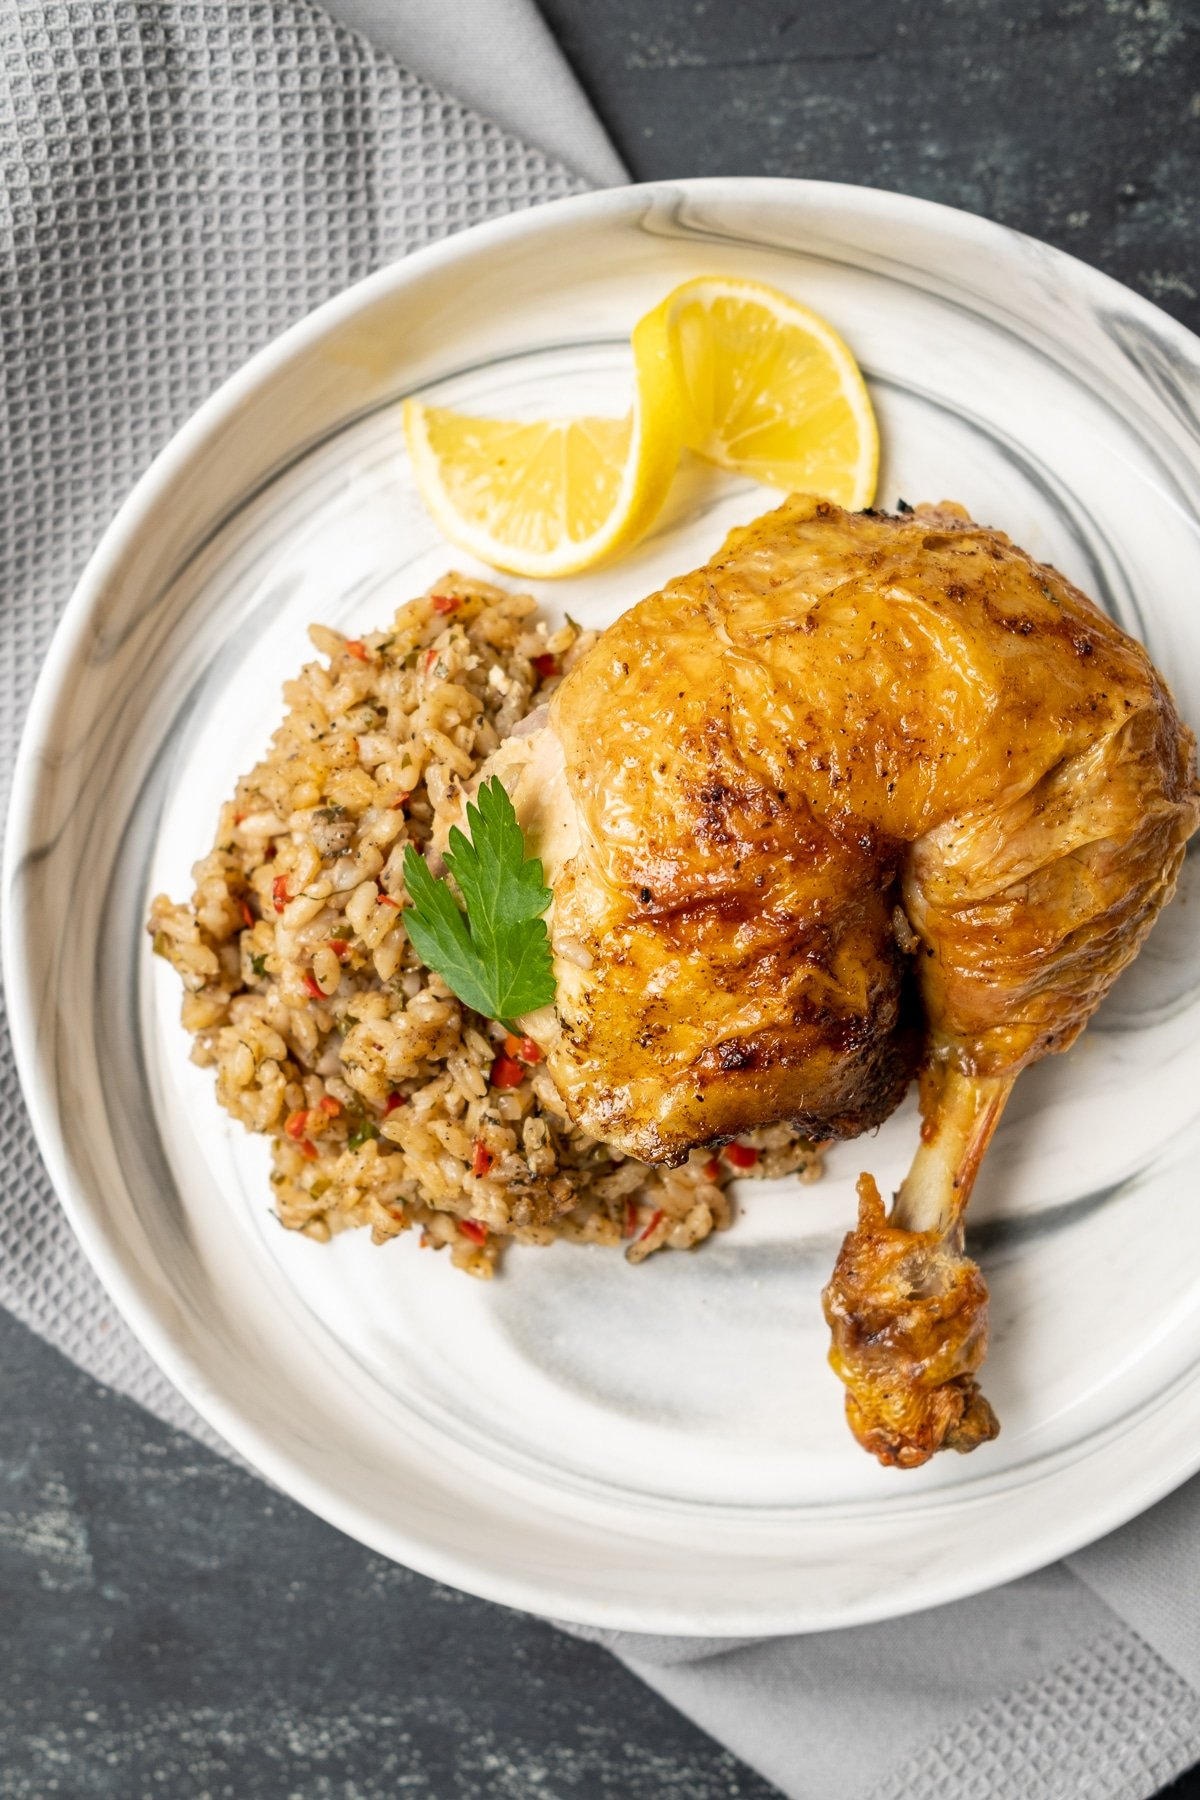 One portion rice stuffed chicken and a lemon slice on a white plate.